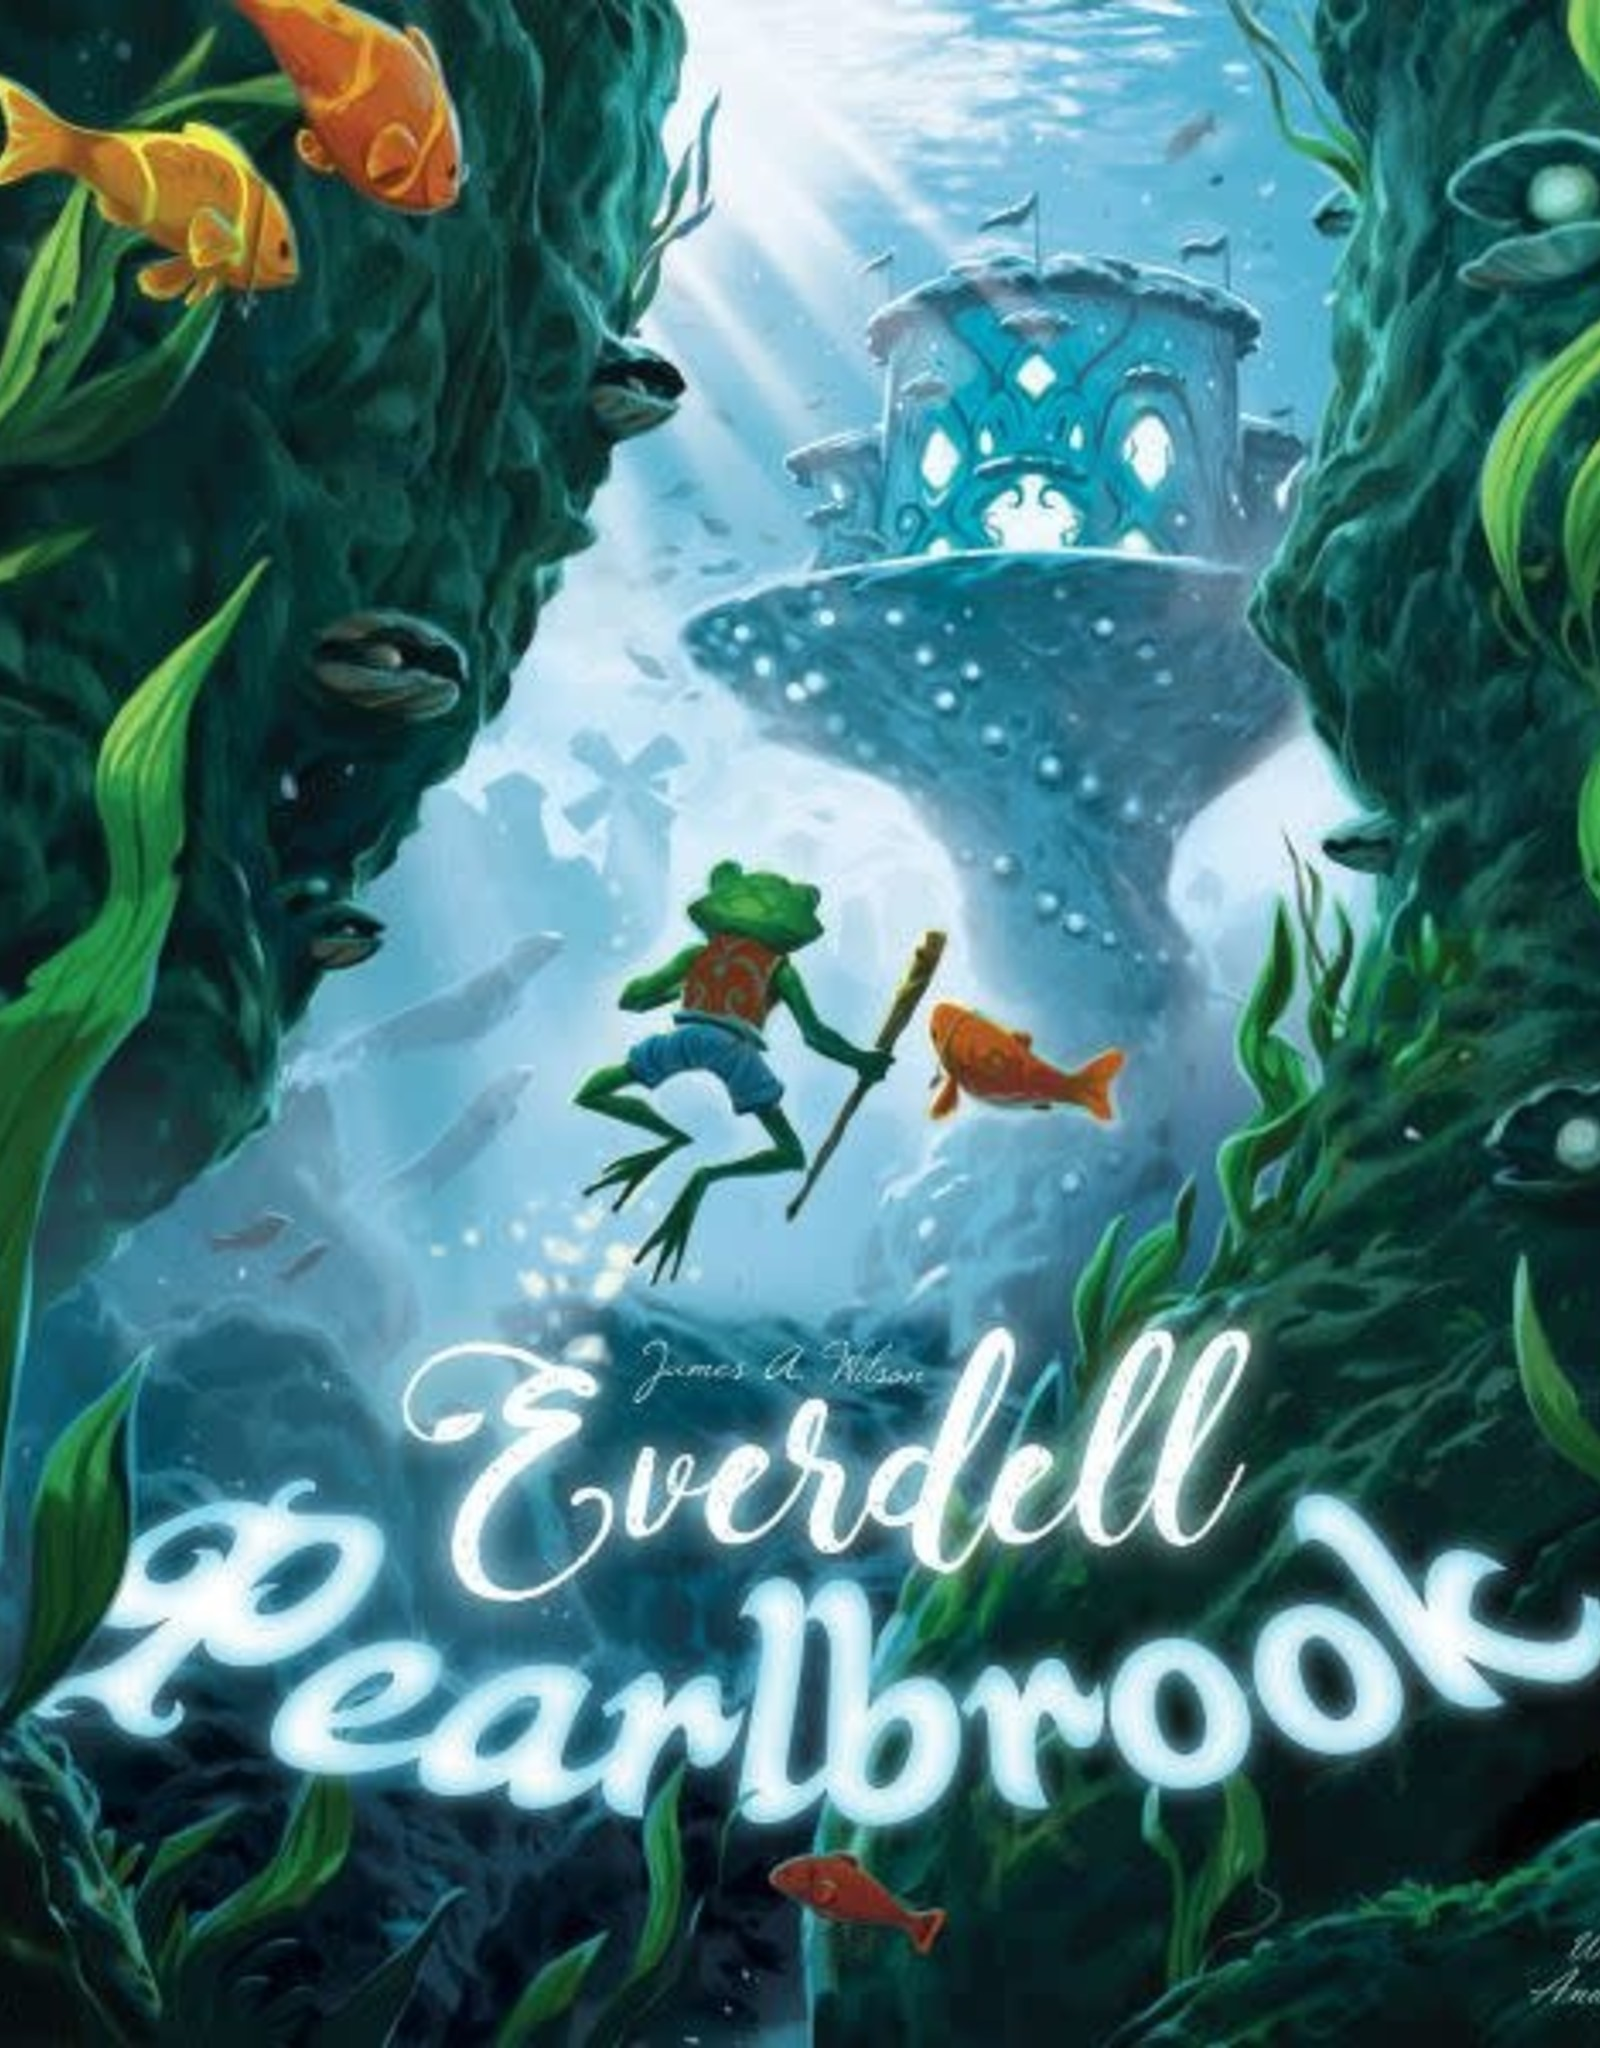 Starling Games Everdell: Pearlbook